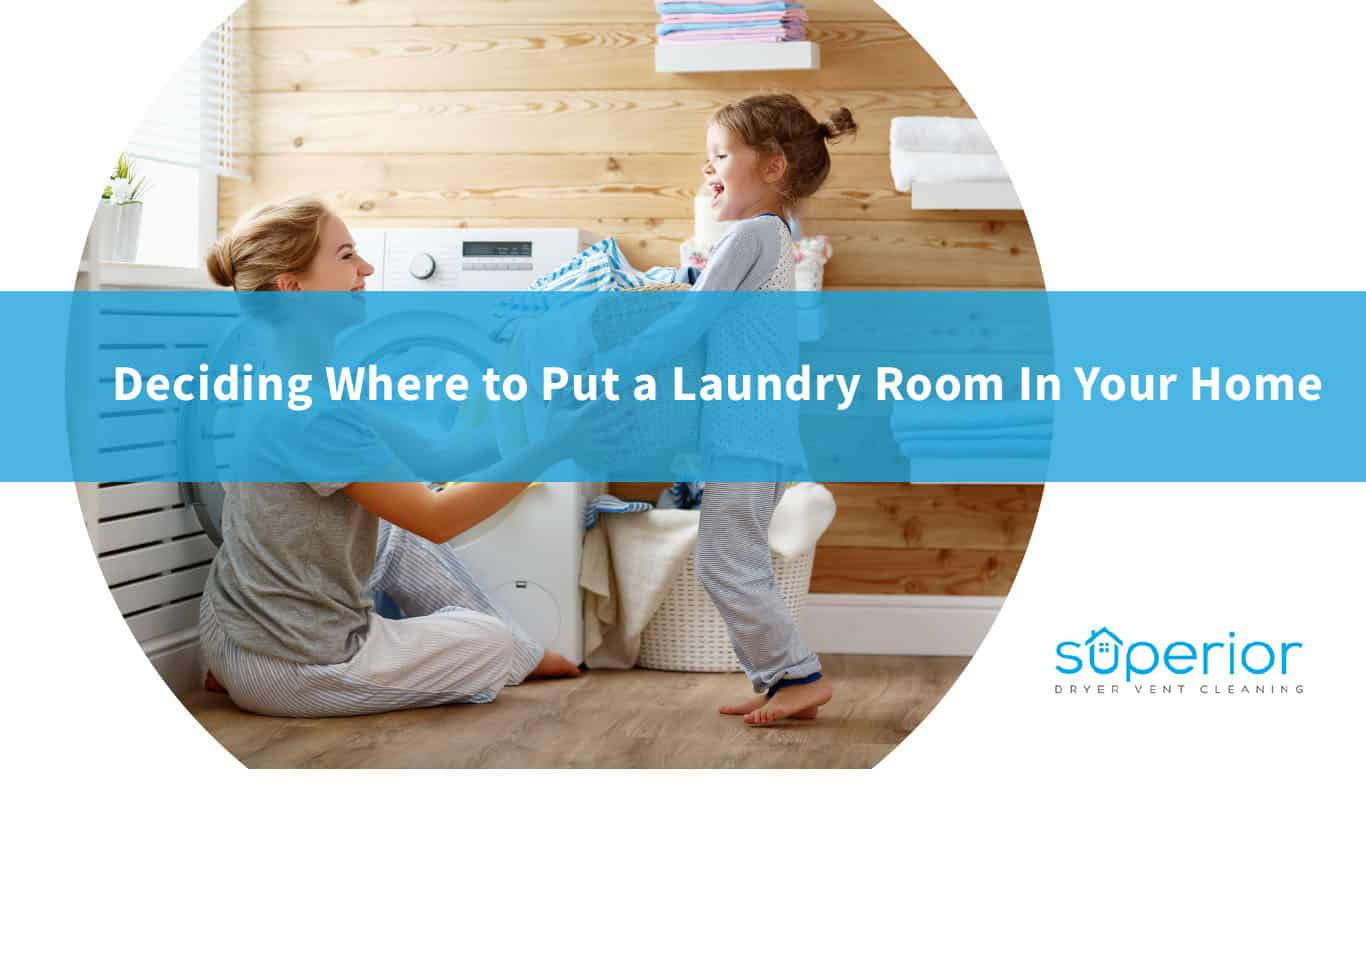 Deciding Where to Put a Laundry Room In Your Home